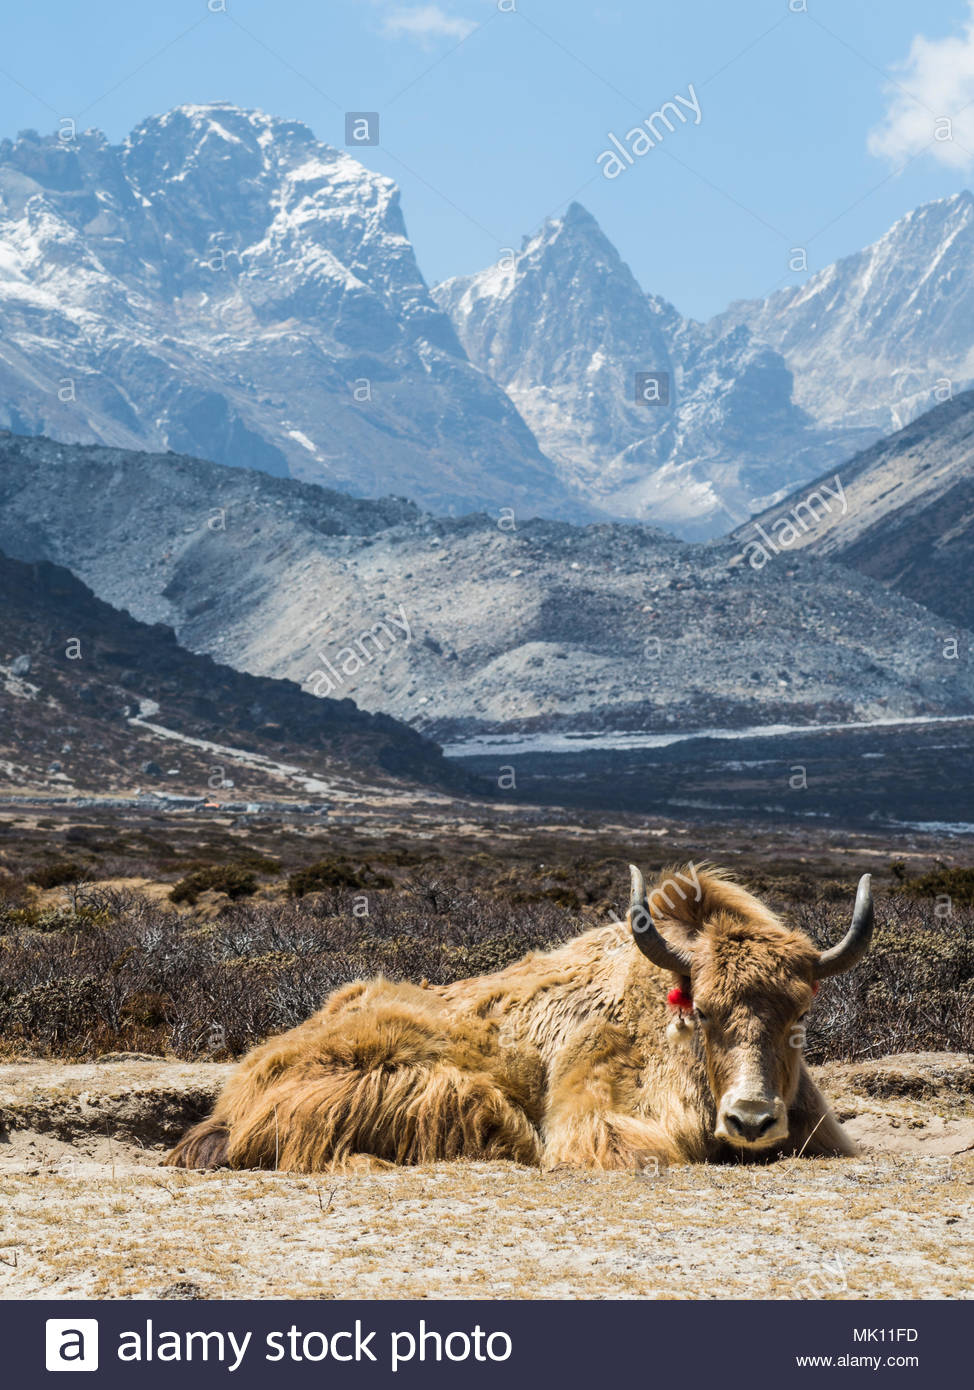 Resting bull yak photo, domestic farm animal, carrying luggage in village, rural life and beautiful nature, peaceful summer scene on trekking path to  - Stock Image